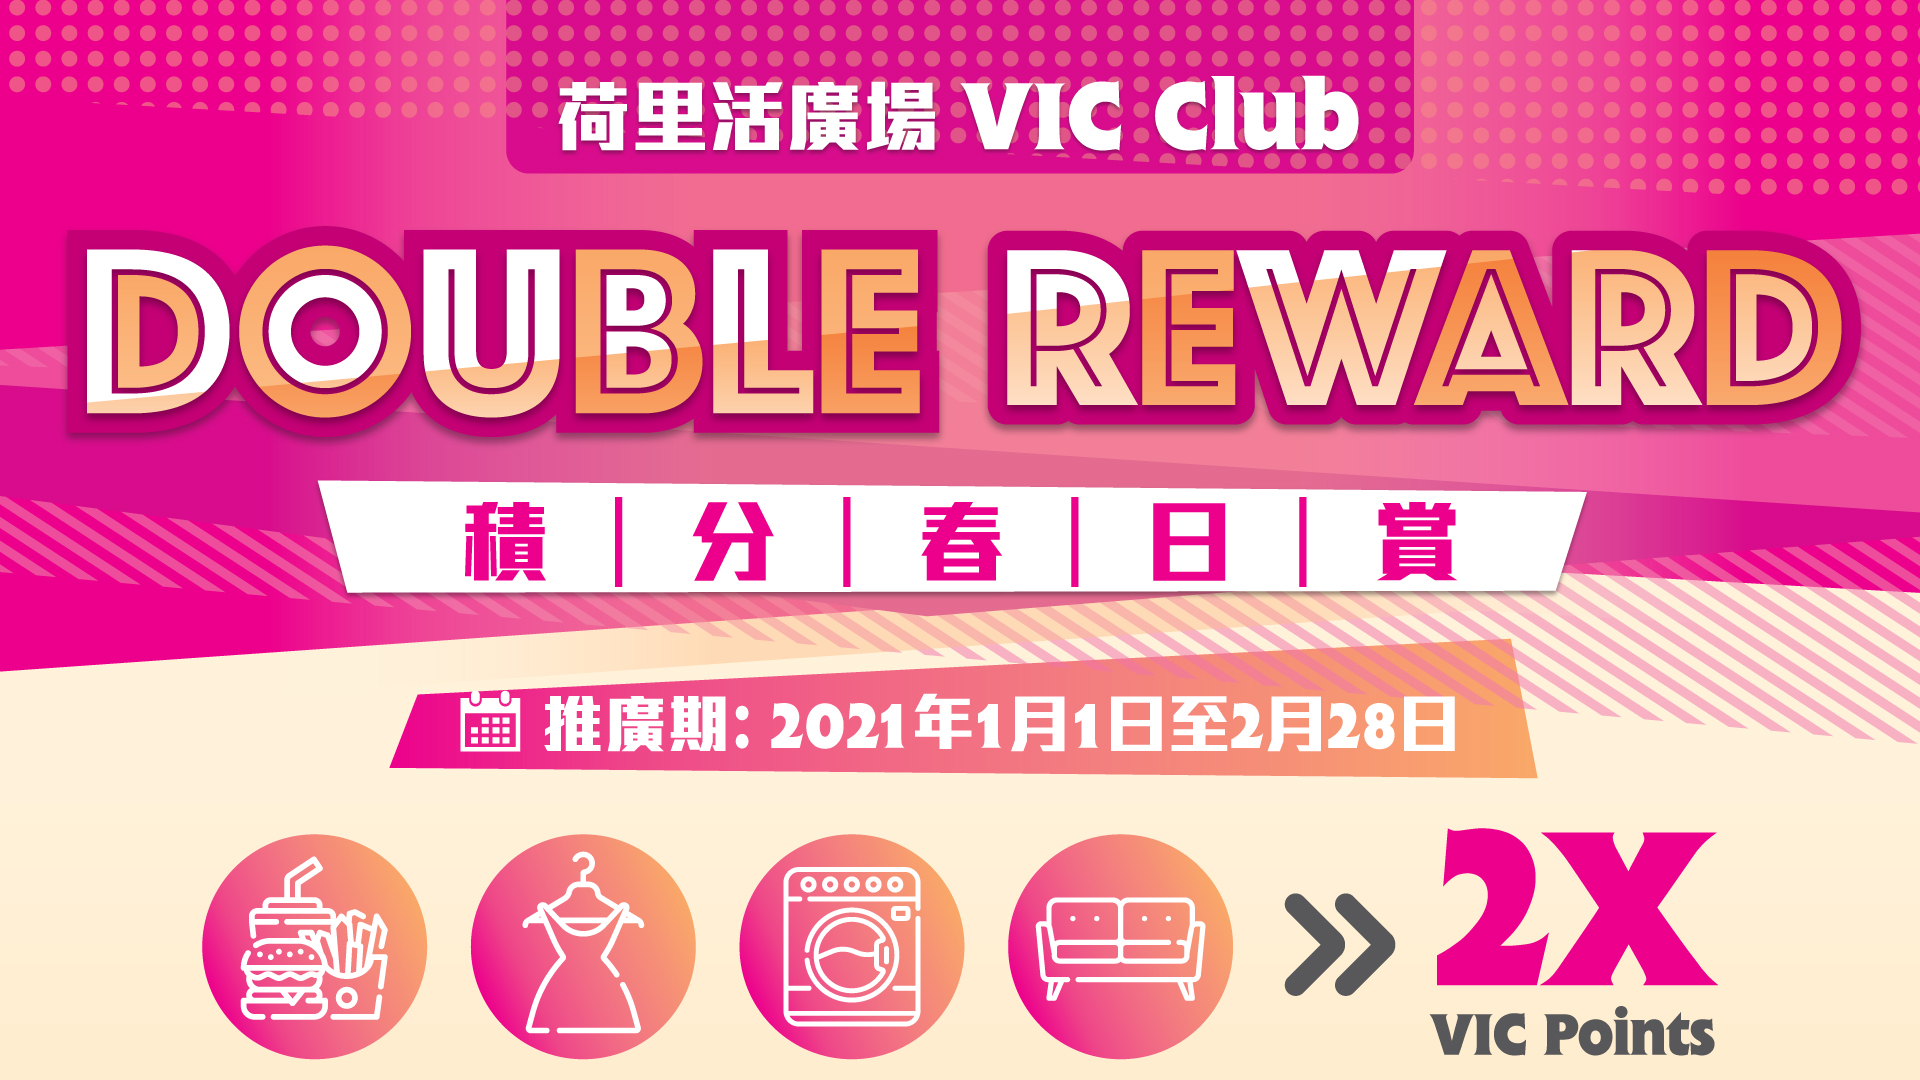 VIC Double Reward